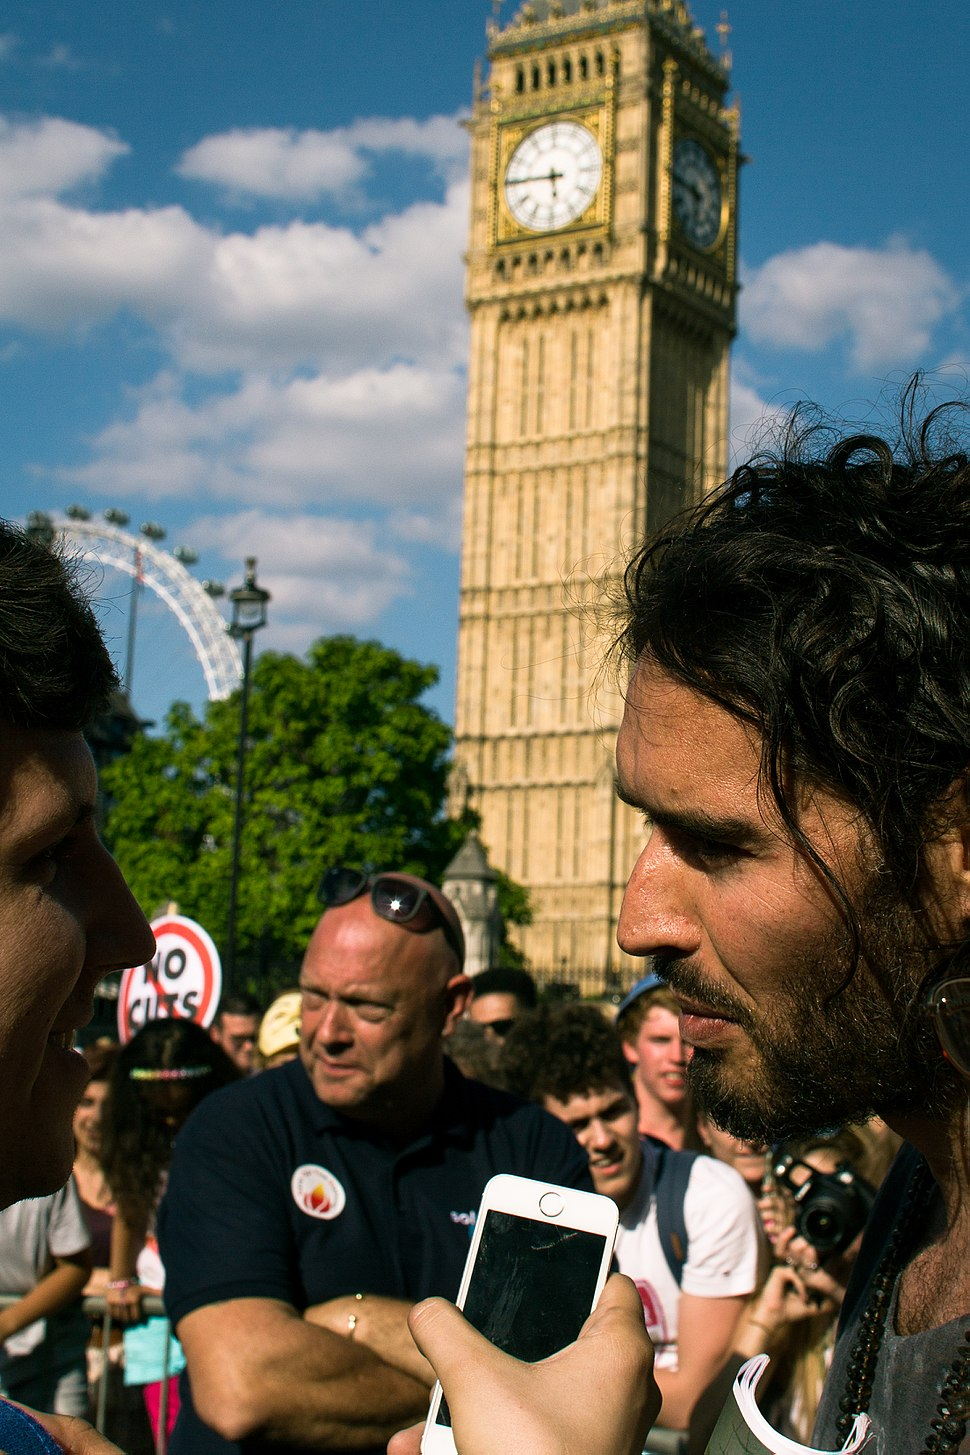 Russell Brand Fire Brigades Union interview 2